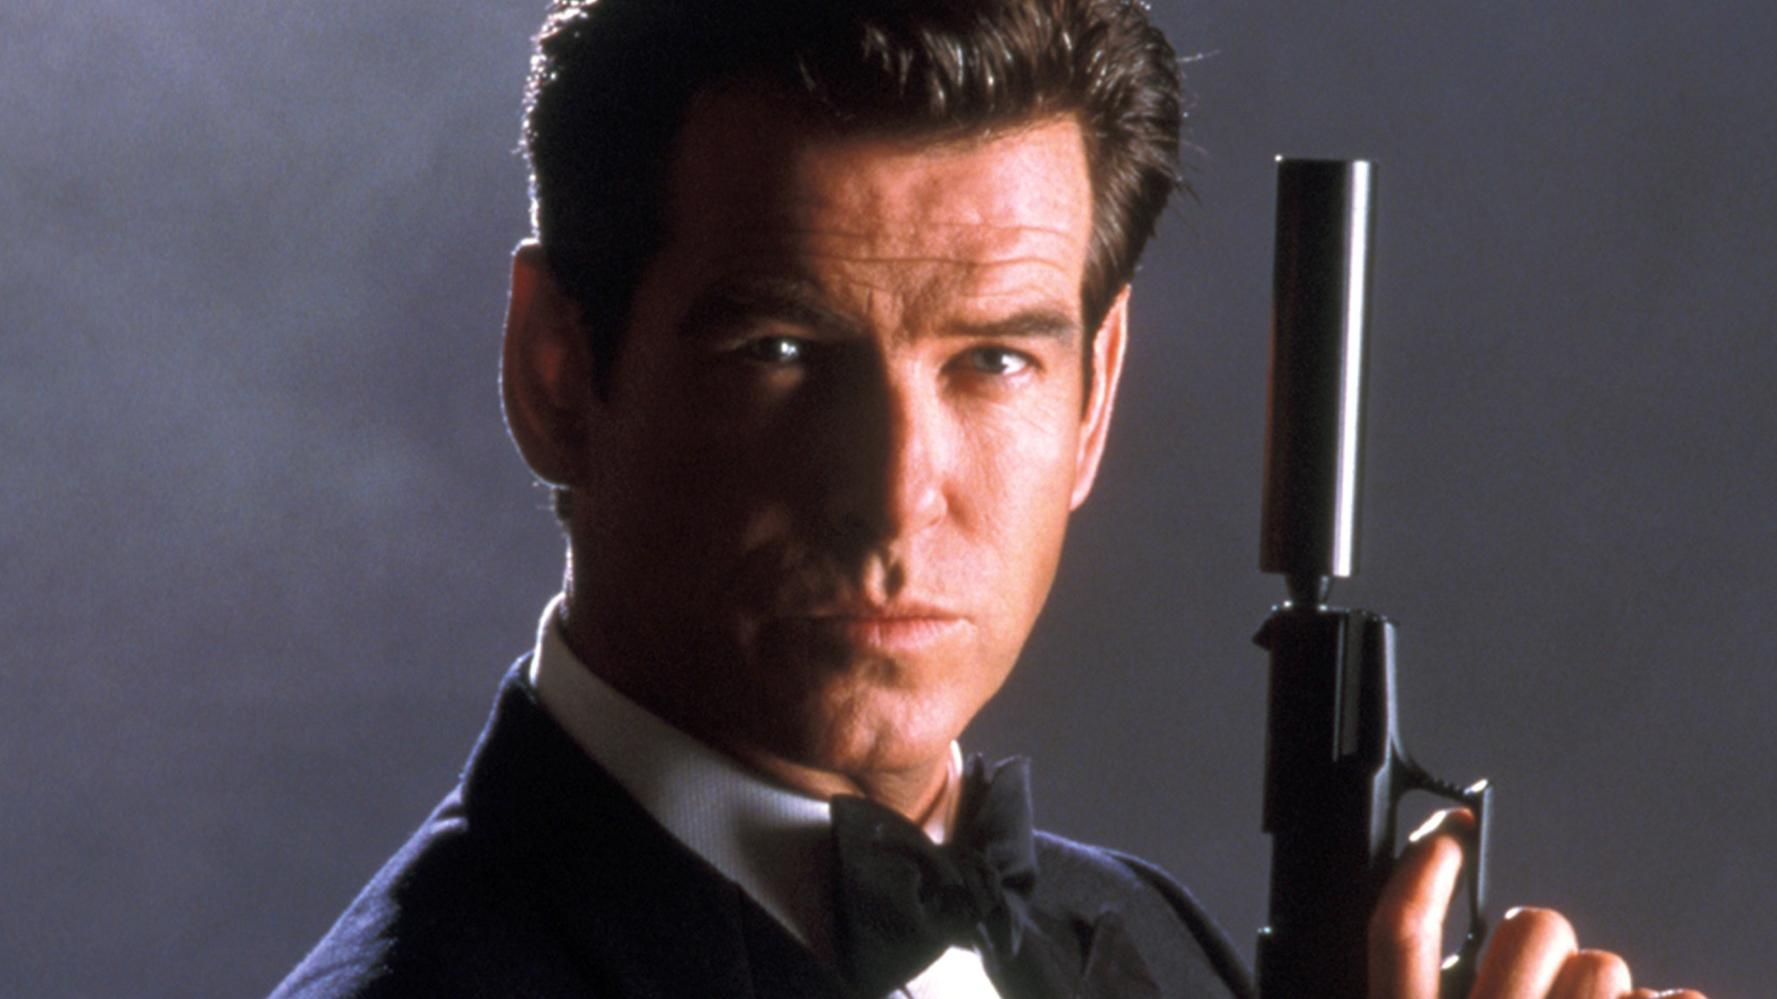 James Bond 007 - Stirb an einem anderen Tag, (DIE ANOTHER DAY) GB-USA 2002, Regie: Lee Tamahori, PIERCE BROSNAN